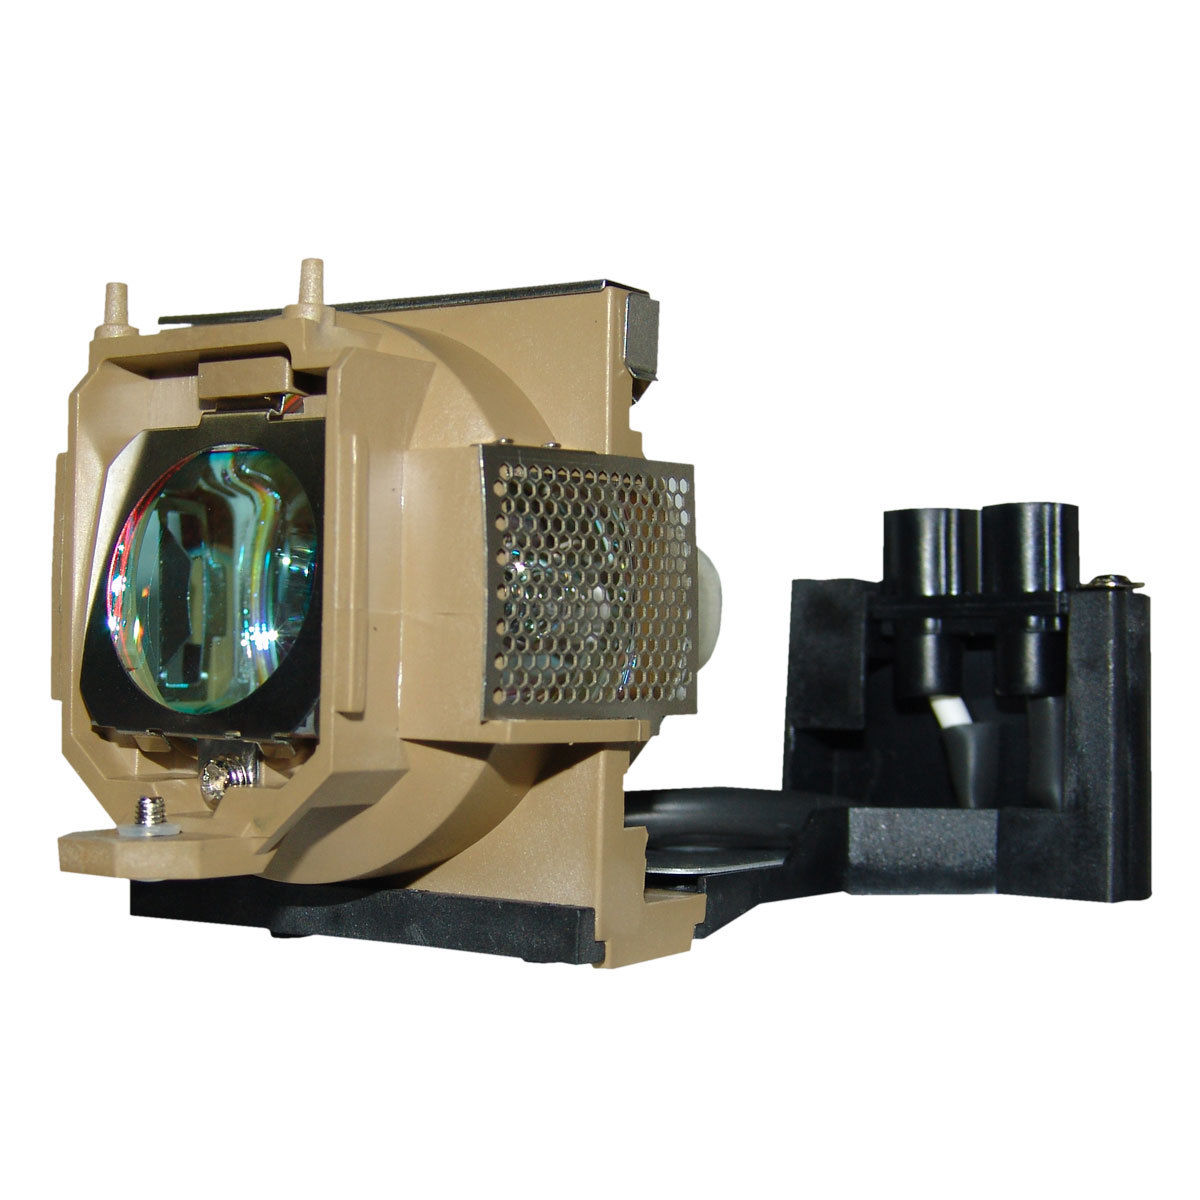 Projector Lamp Bulb 59.J8101.CG1 for BENQ PB8250 PB8260 PE8260 with housing free shipping brand new replacement lamp with housing 59 j8101 cg1 for benq pb8250 pb8260 pe8260 projector